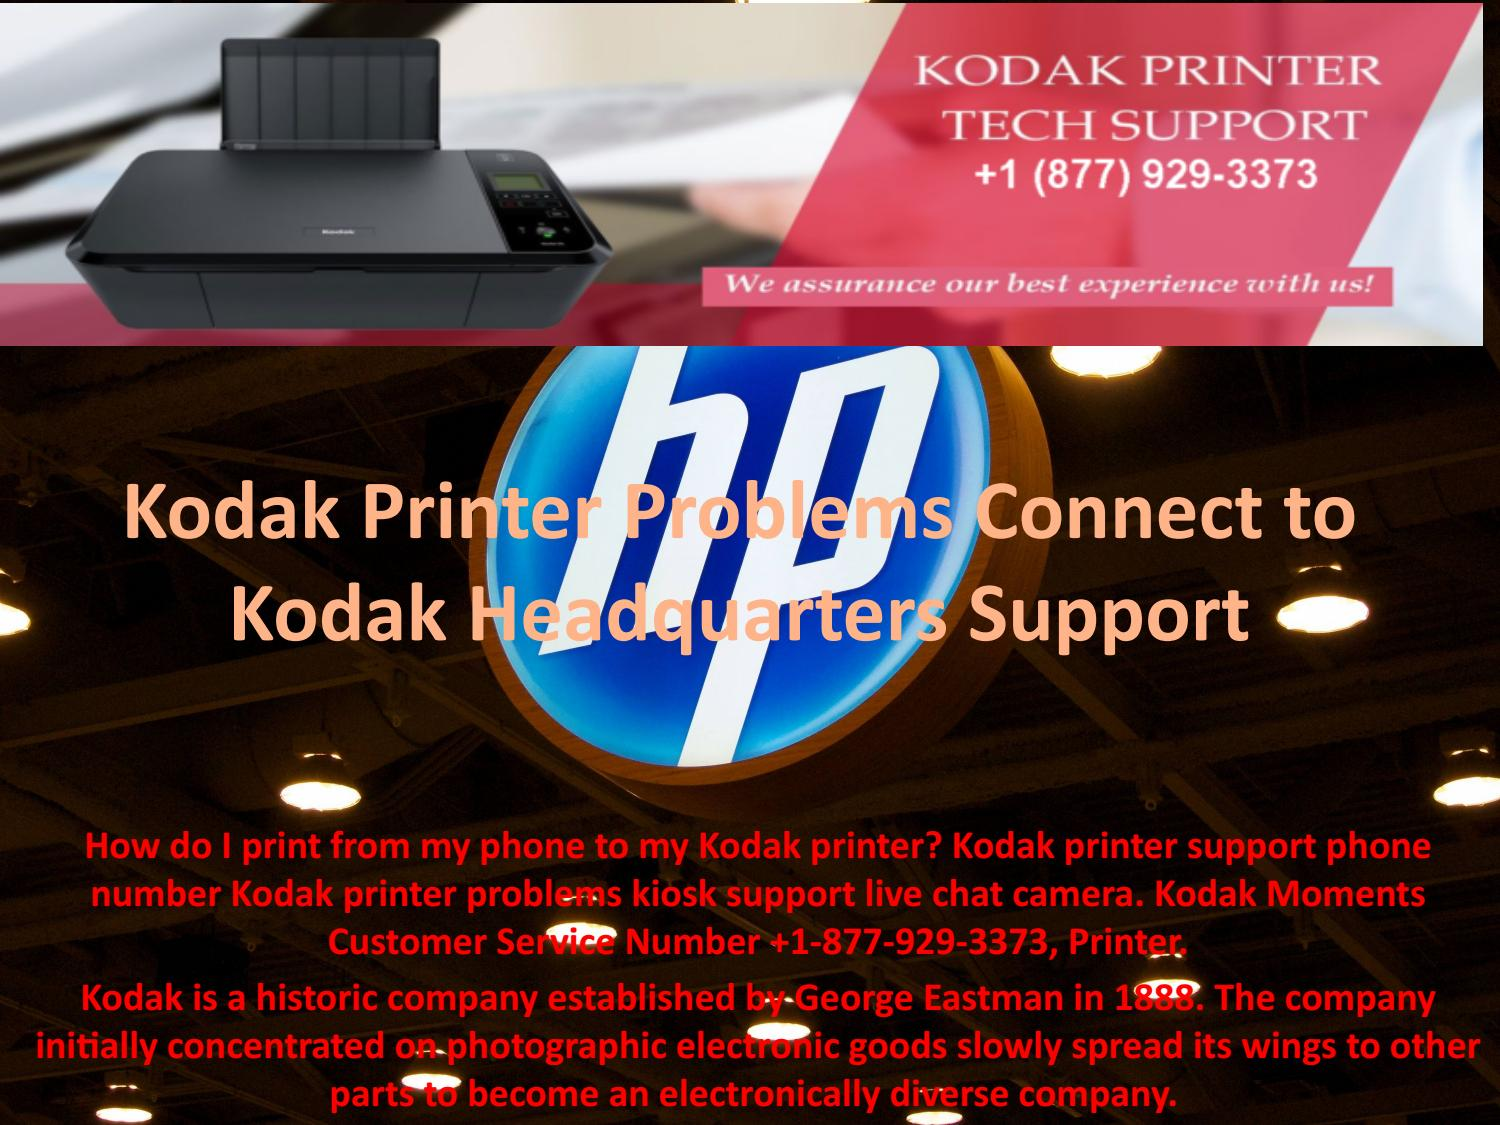 Kodak Printer Problems Connect to Kodak Headquarters Support by